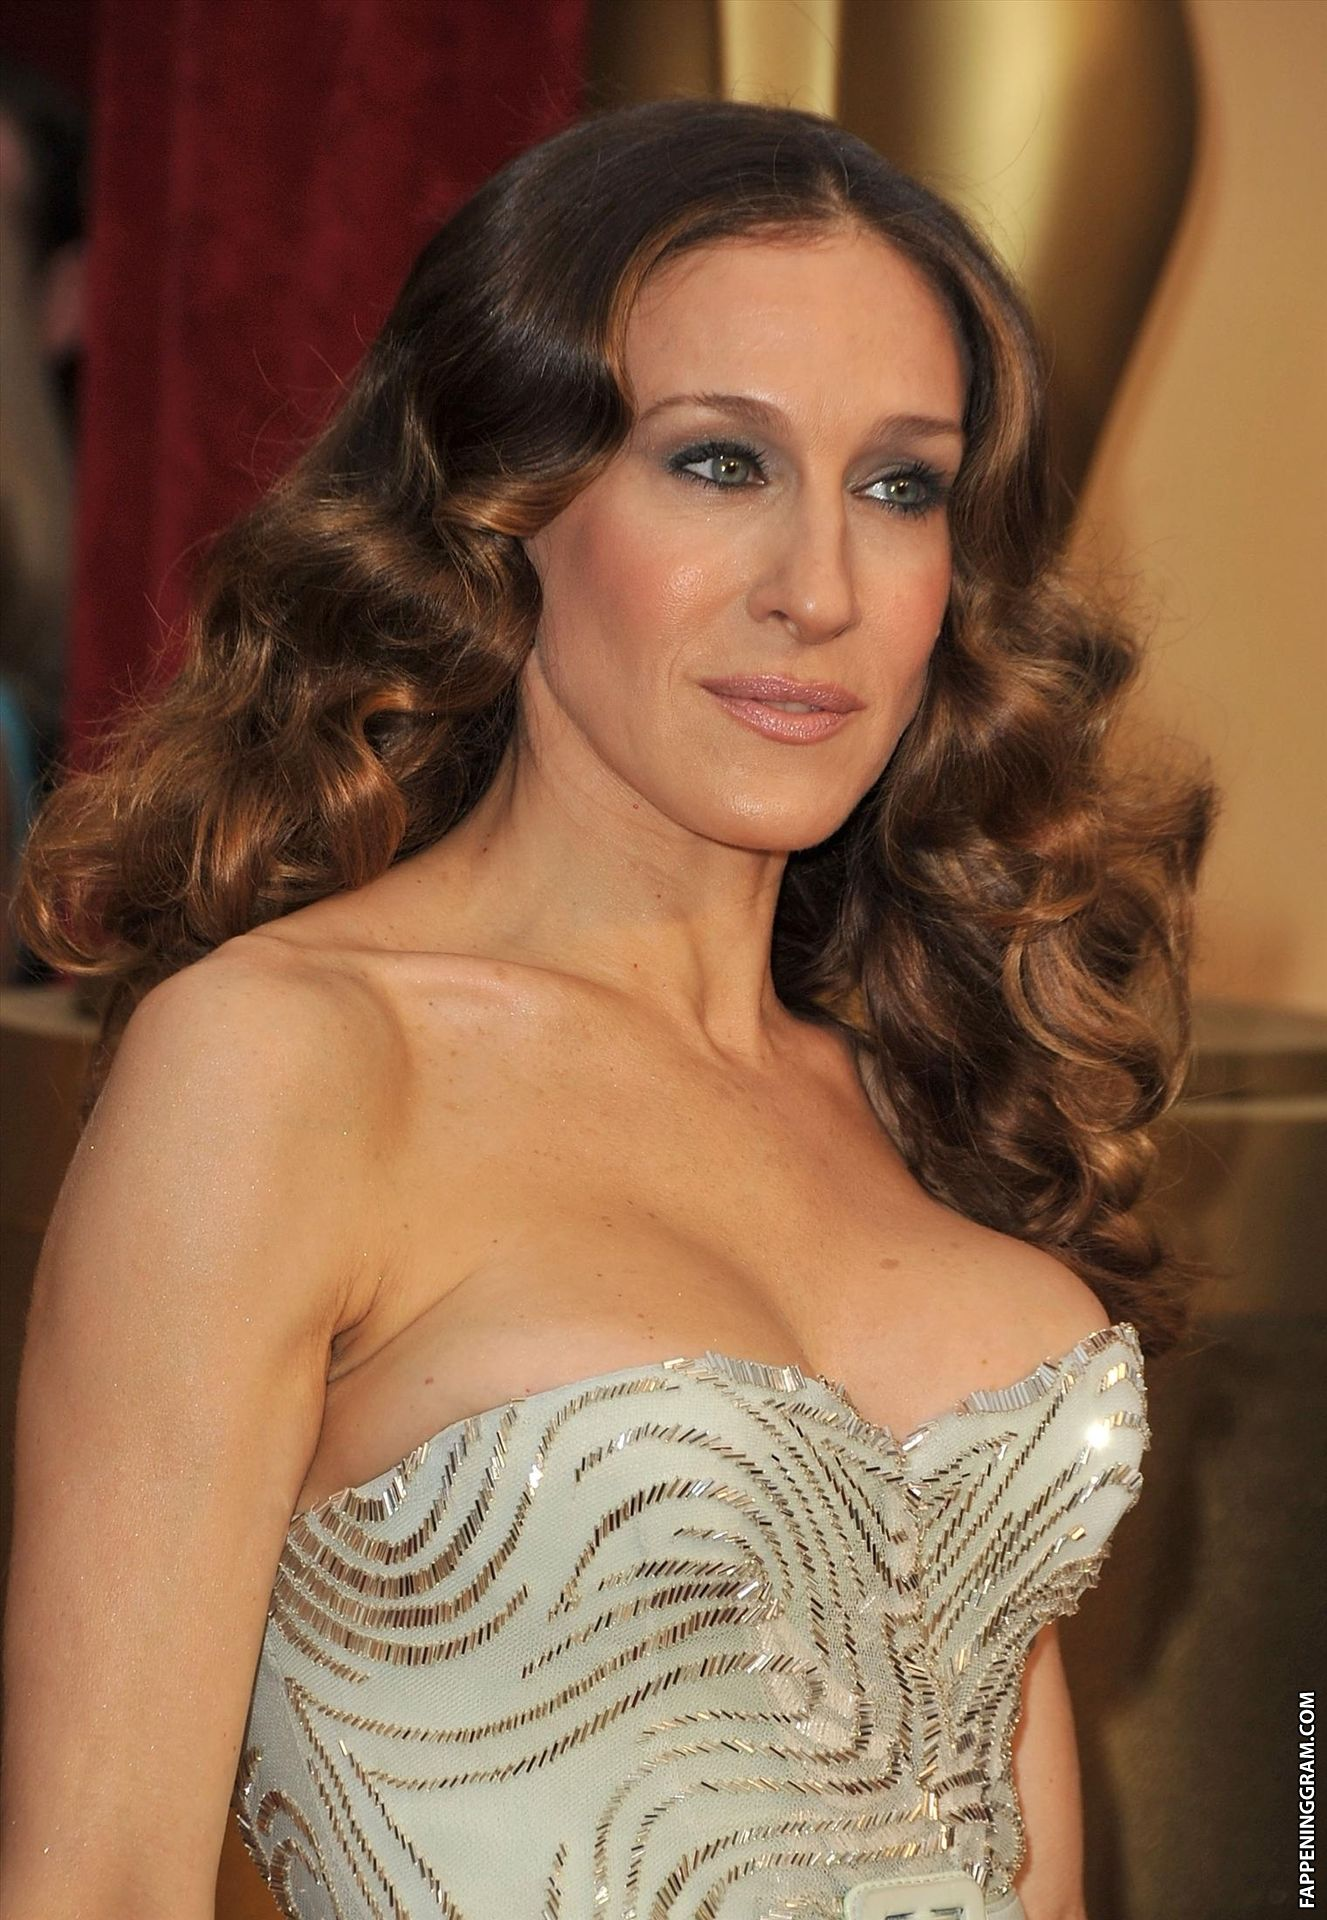 Sarah Jessica Parker Nude The Fappening - Page 5